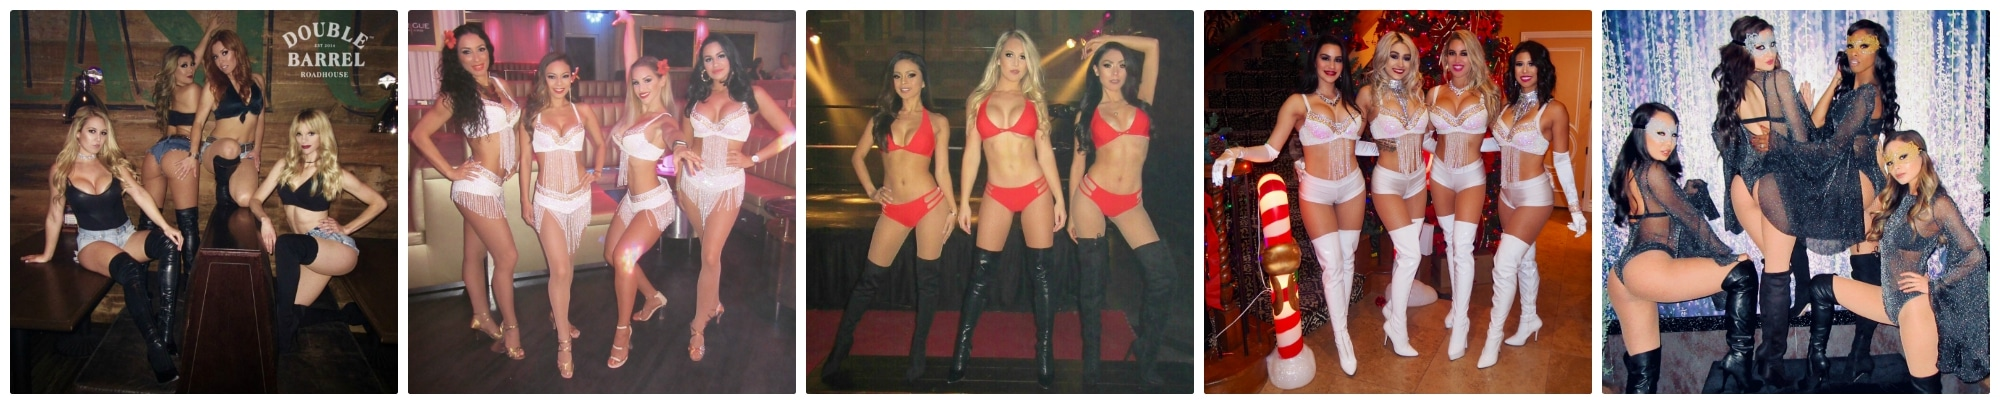 legend entertainment dancers las vegas